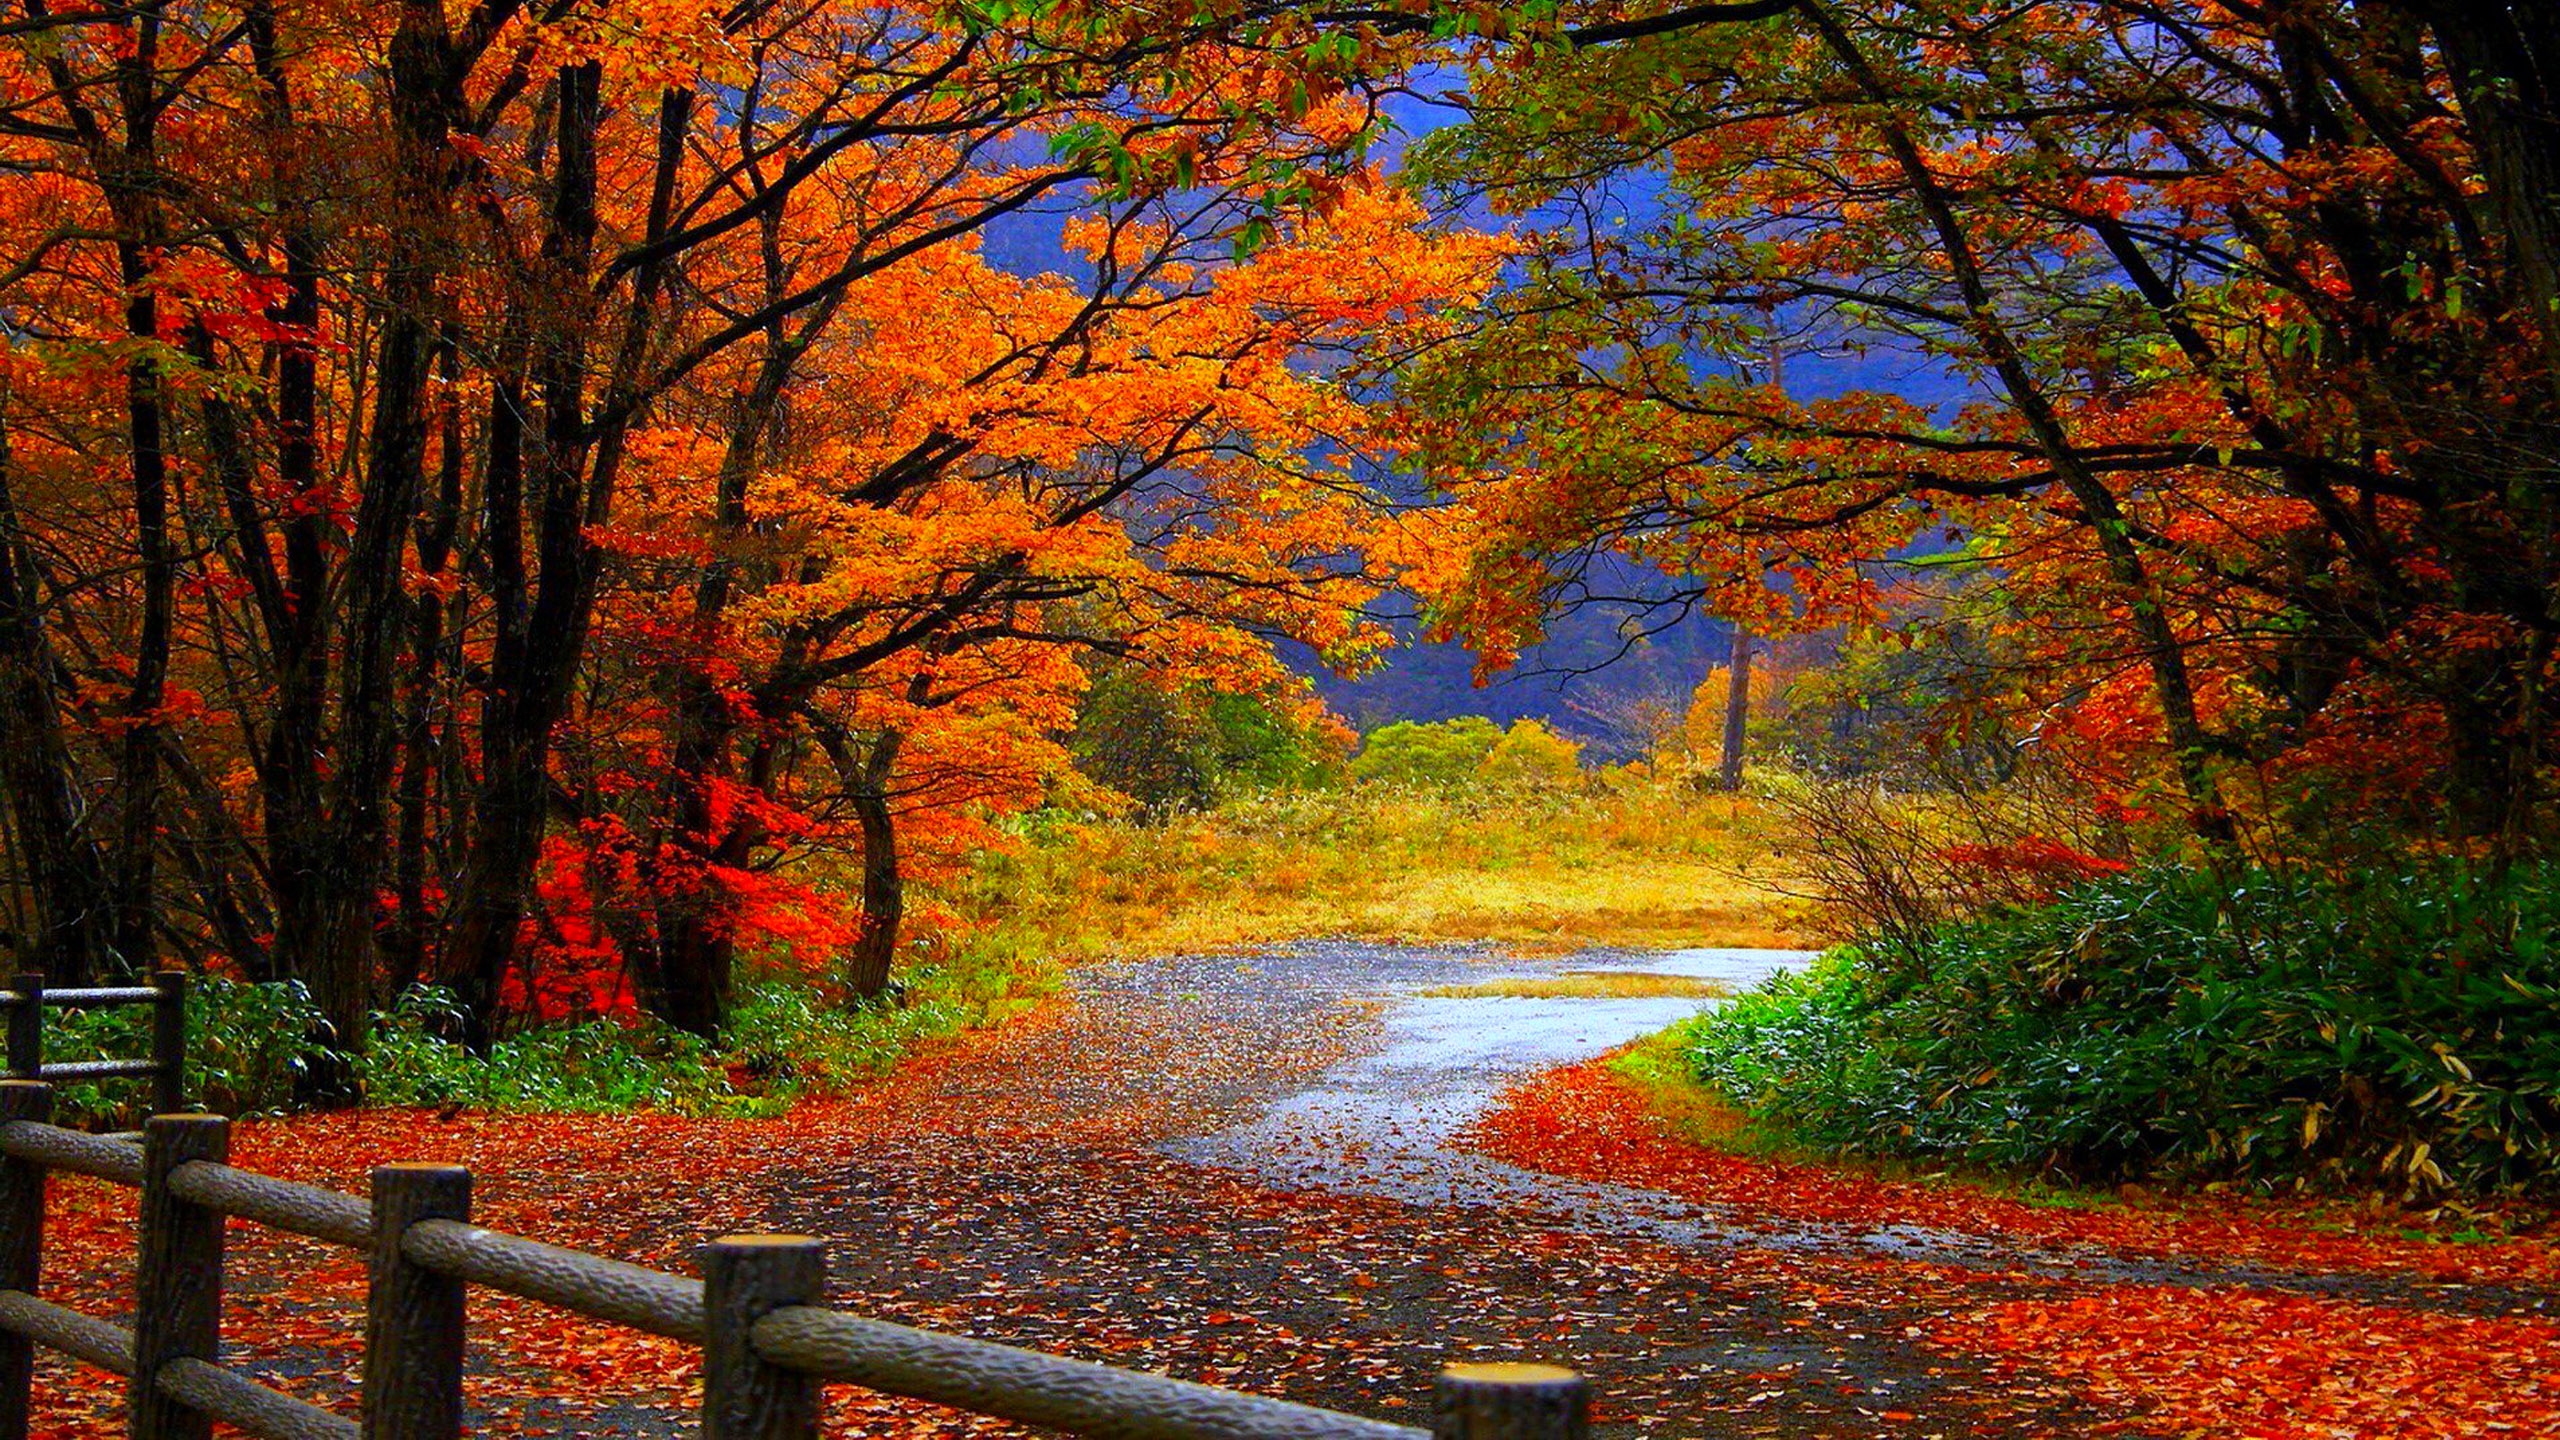 Autumn Tree in Fall HD Desktop Wallpaper Background download 2560x1440